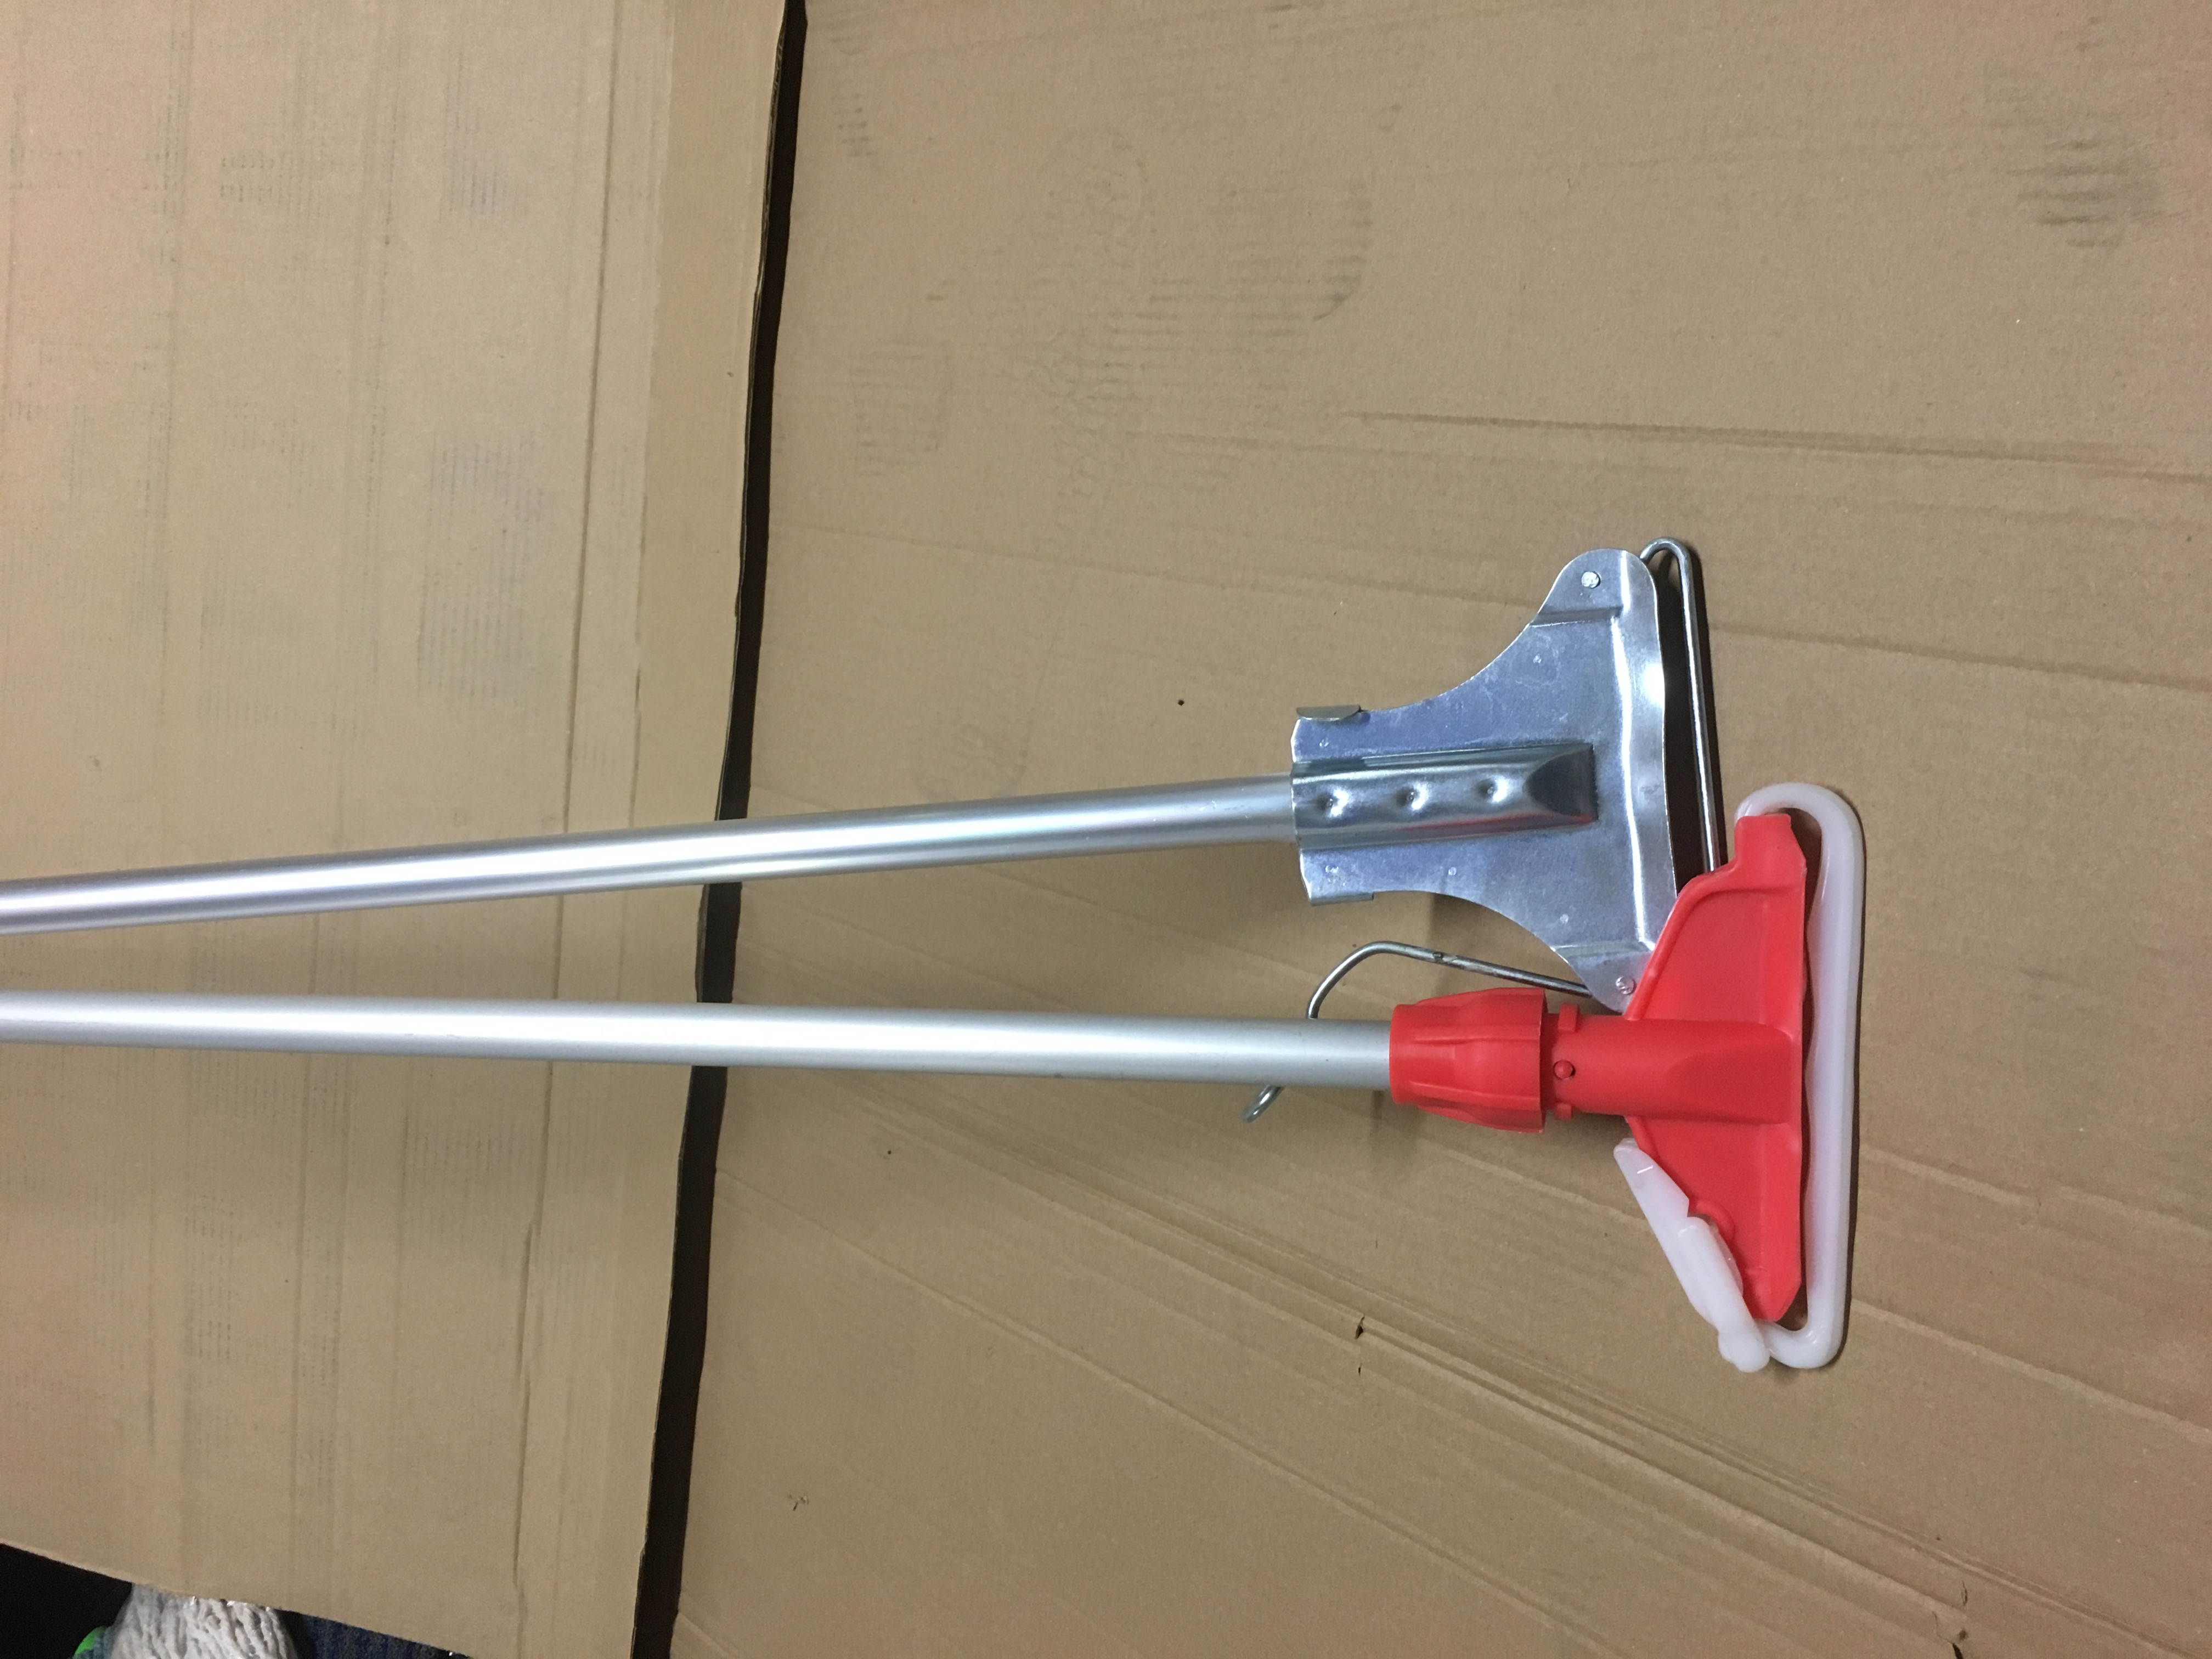 Aluminium handles and mop holder